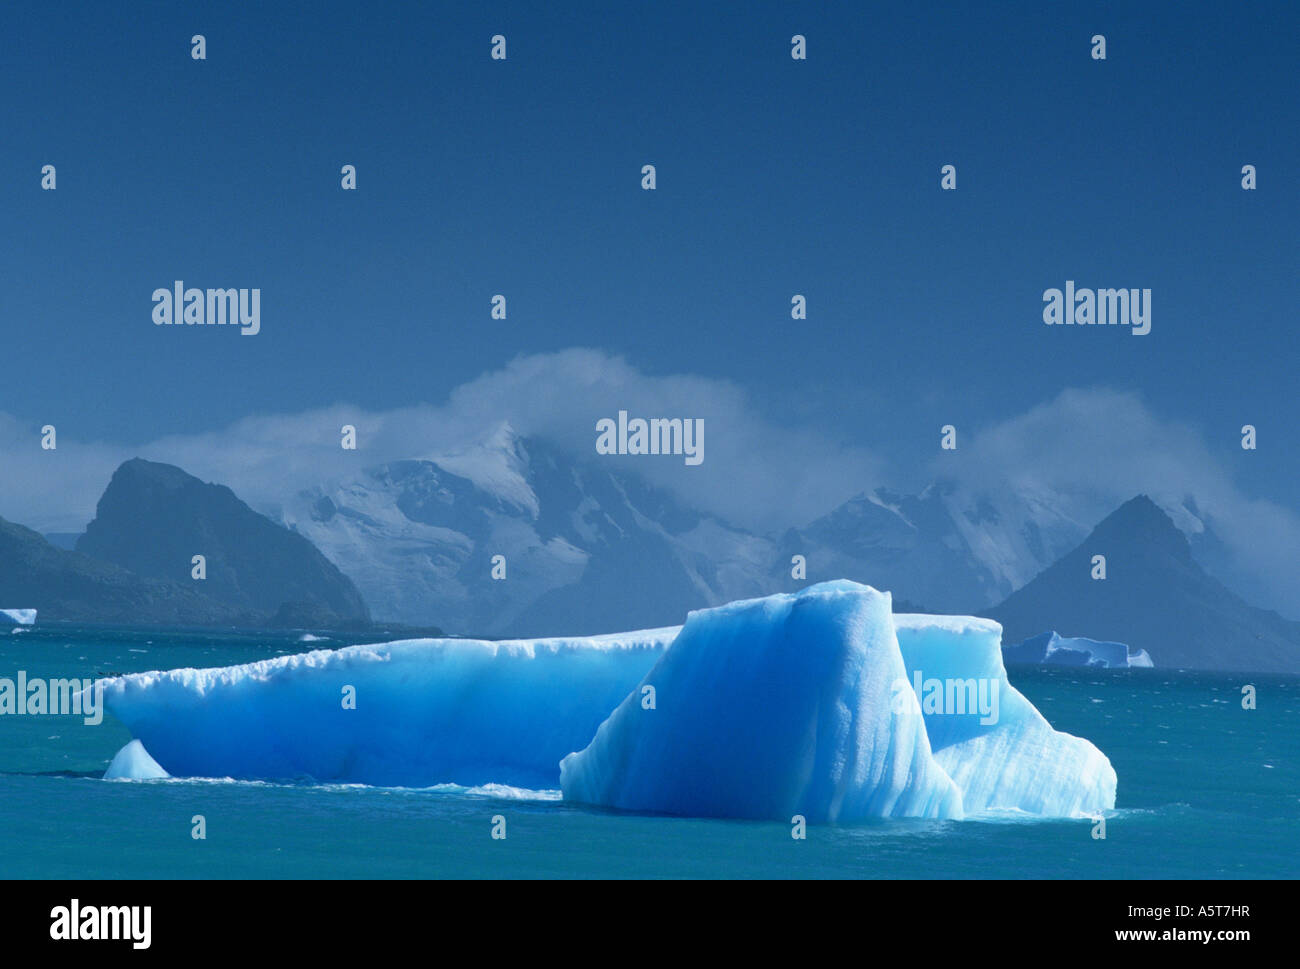 Iceberg in the South Orkney Islands Subantarctic - Stock Image